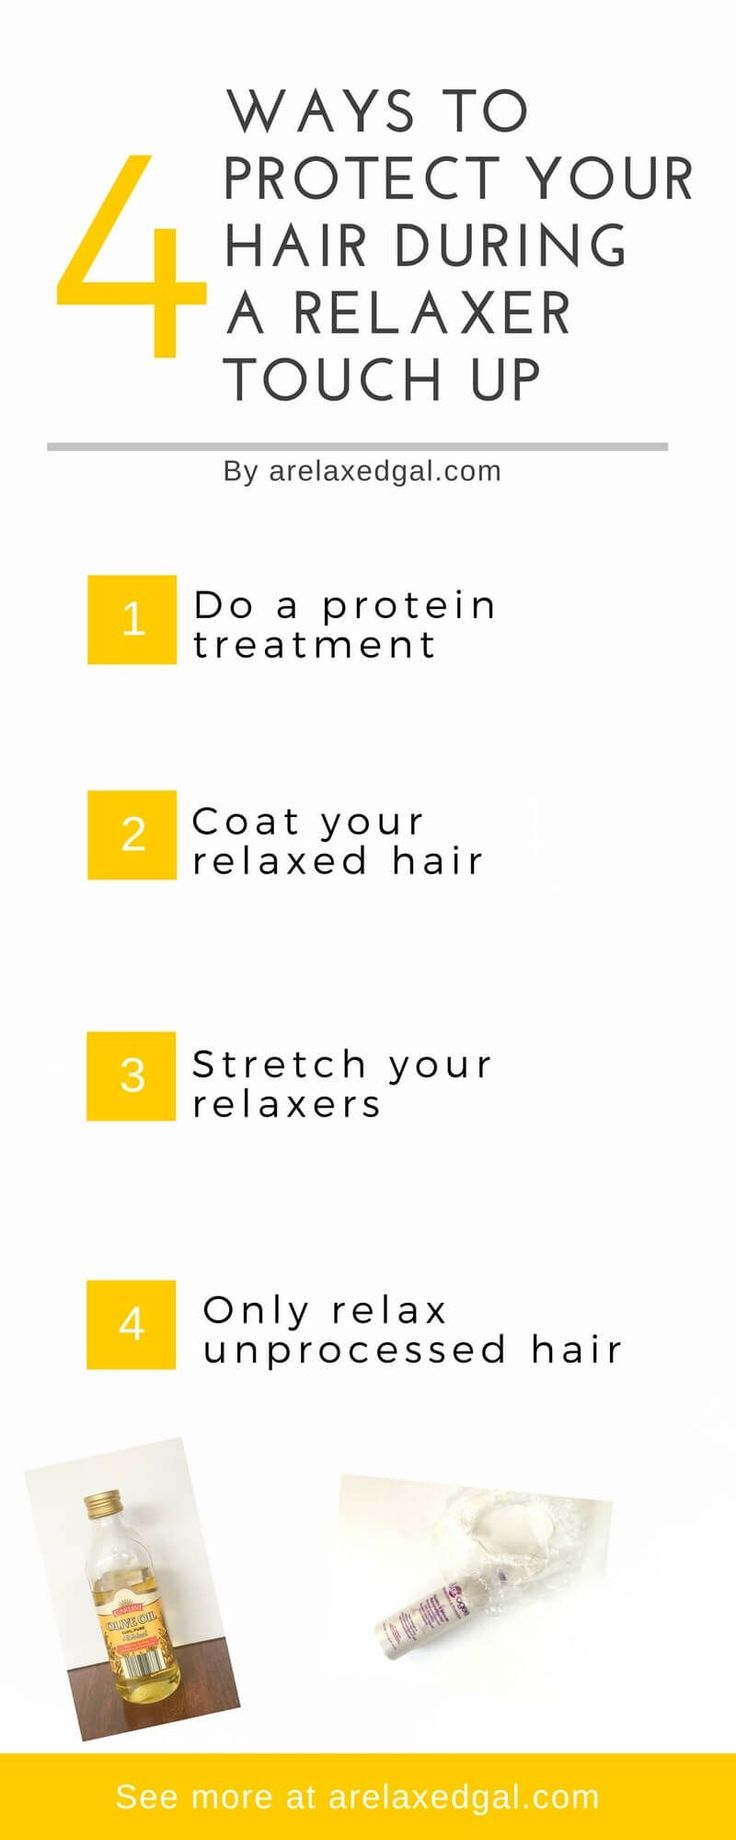 """4 things you can do to protect your hair from overlap and overprocessing during a relaxer touch up."